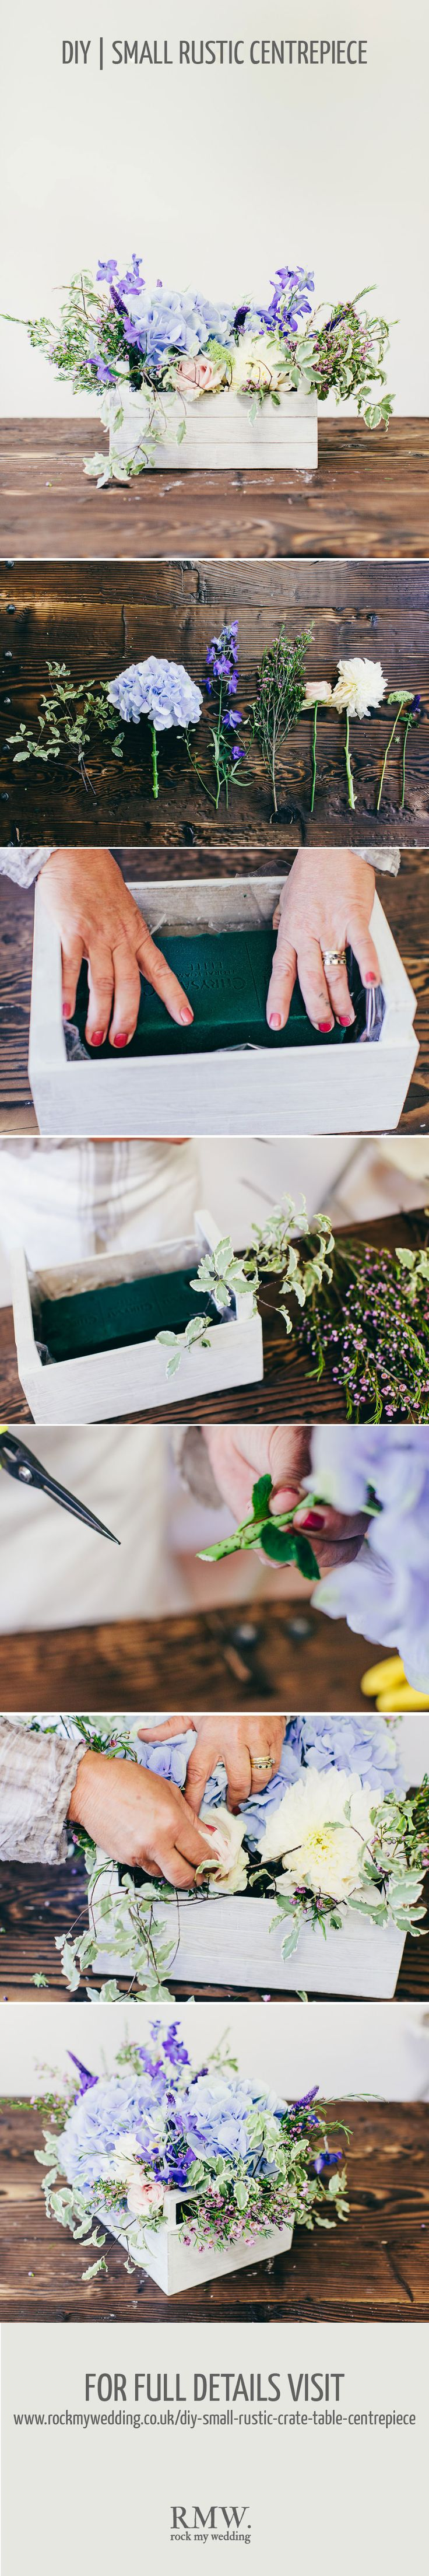 Rustic crate wedding centrepiece DIY tutorial